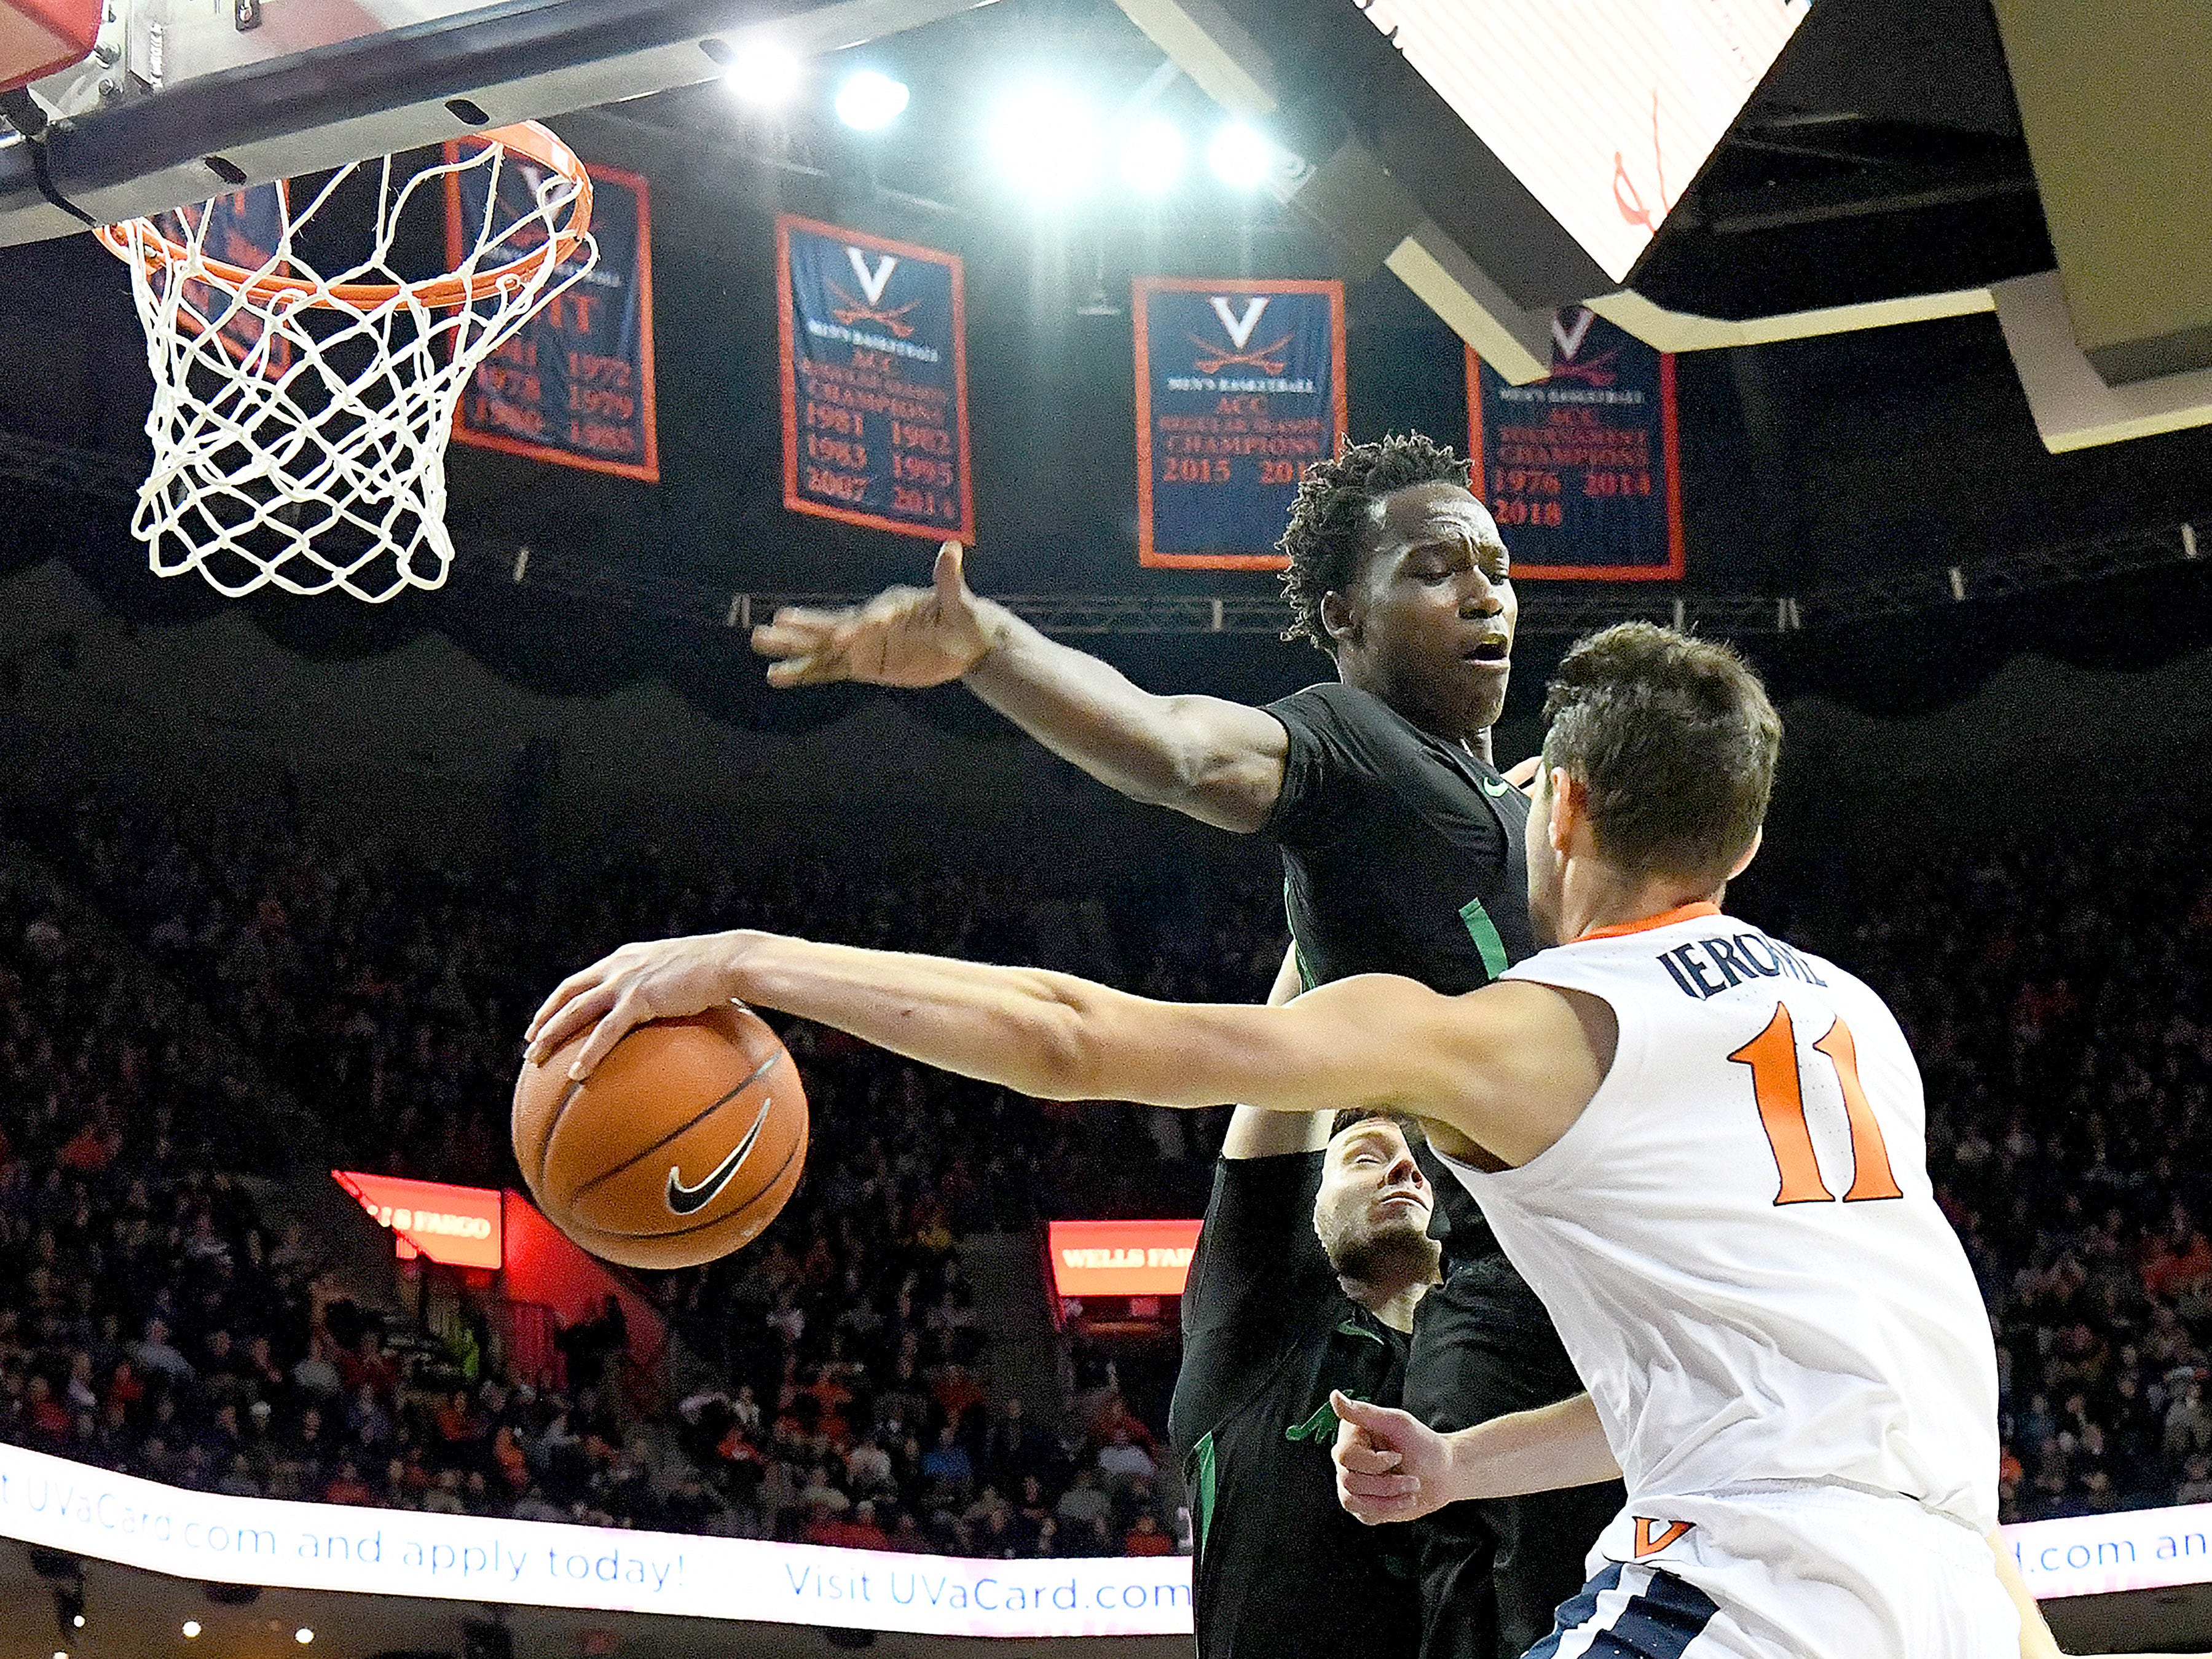 Marshall's Darius George, former R.E. Lee star, guards against Virginia's Ty Jerome during their game against University of Virginia, played at the John Paul Jones Arena on Dec. 31, 2016.